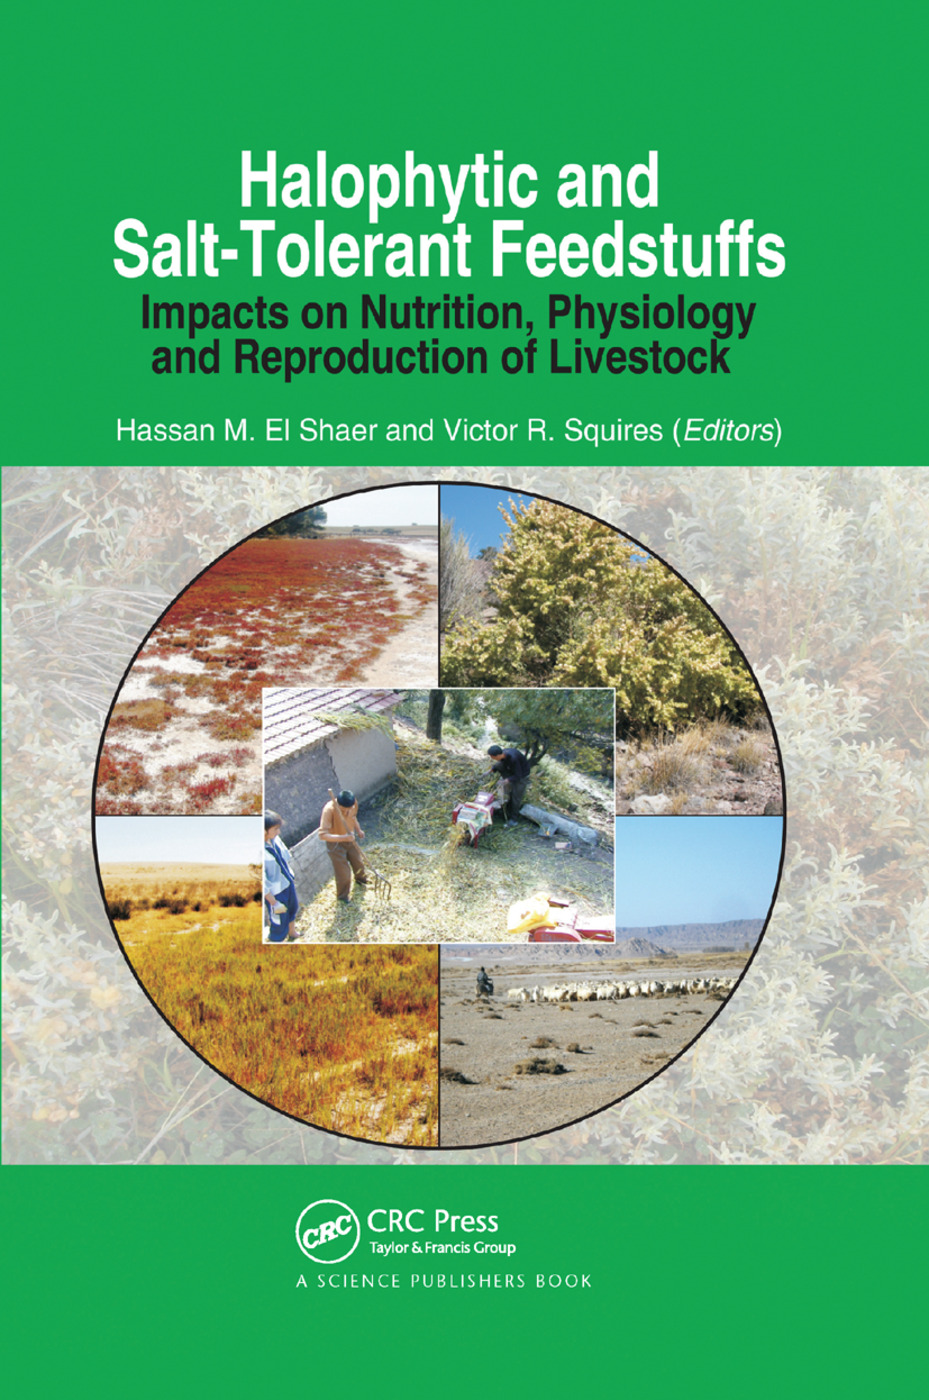 Halophytic and Salt-Tolerant Feedstuffs: Impacts on Nutrition, Physiology and Reproduction of Livestock, 1st Edition (Paperback) book cover